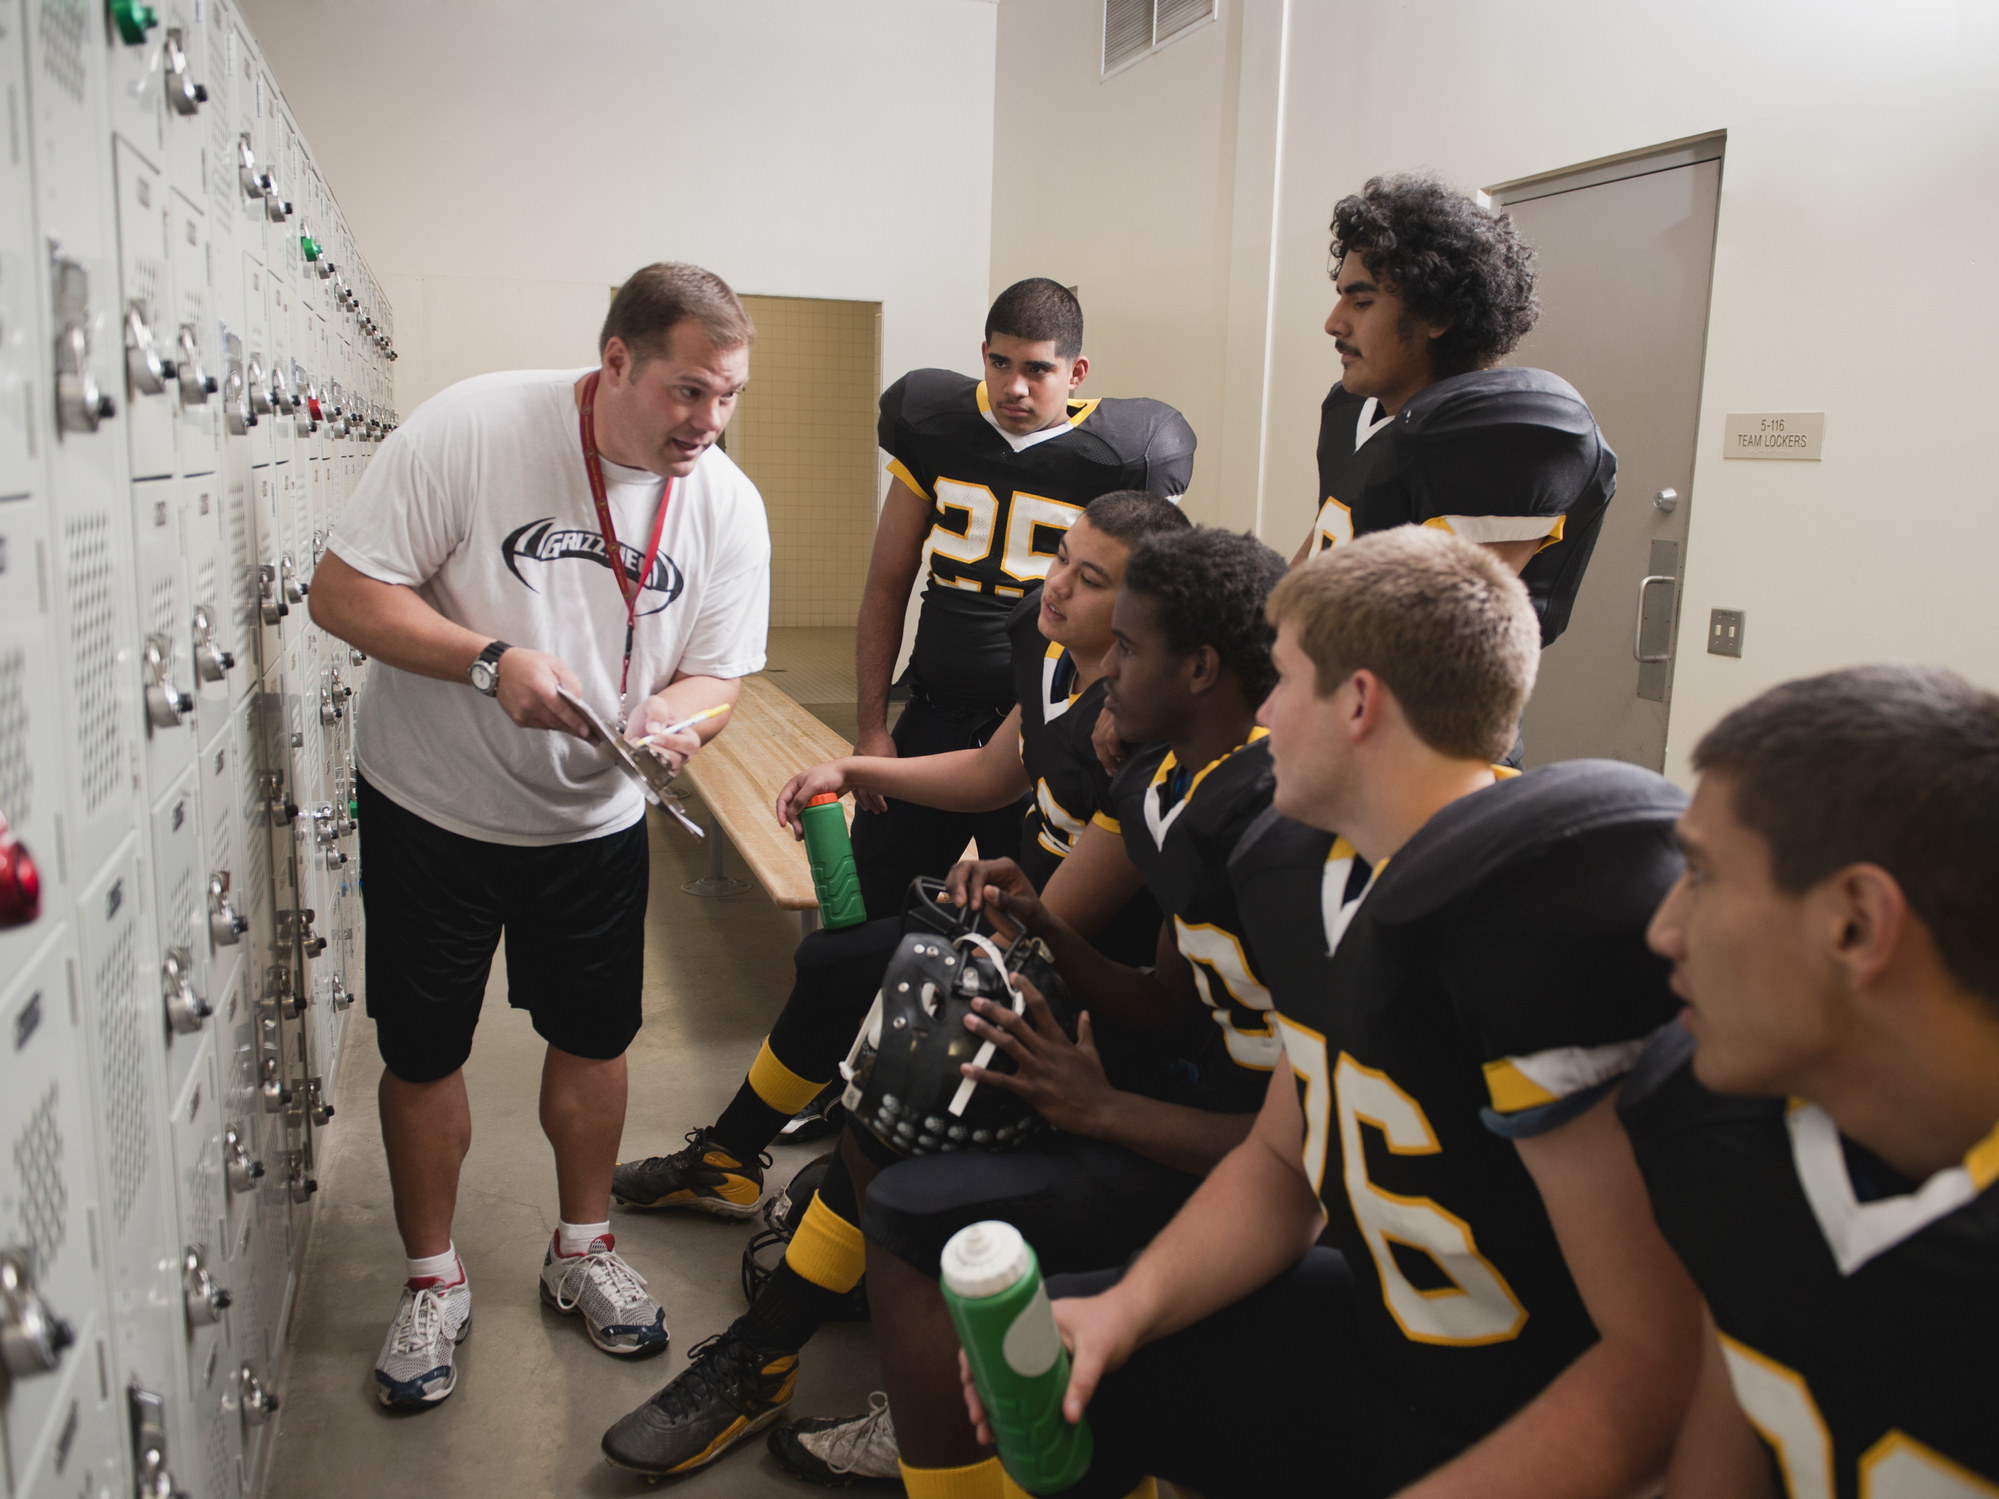 football coach with the team in the locker room